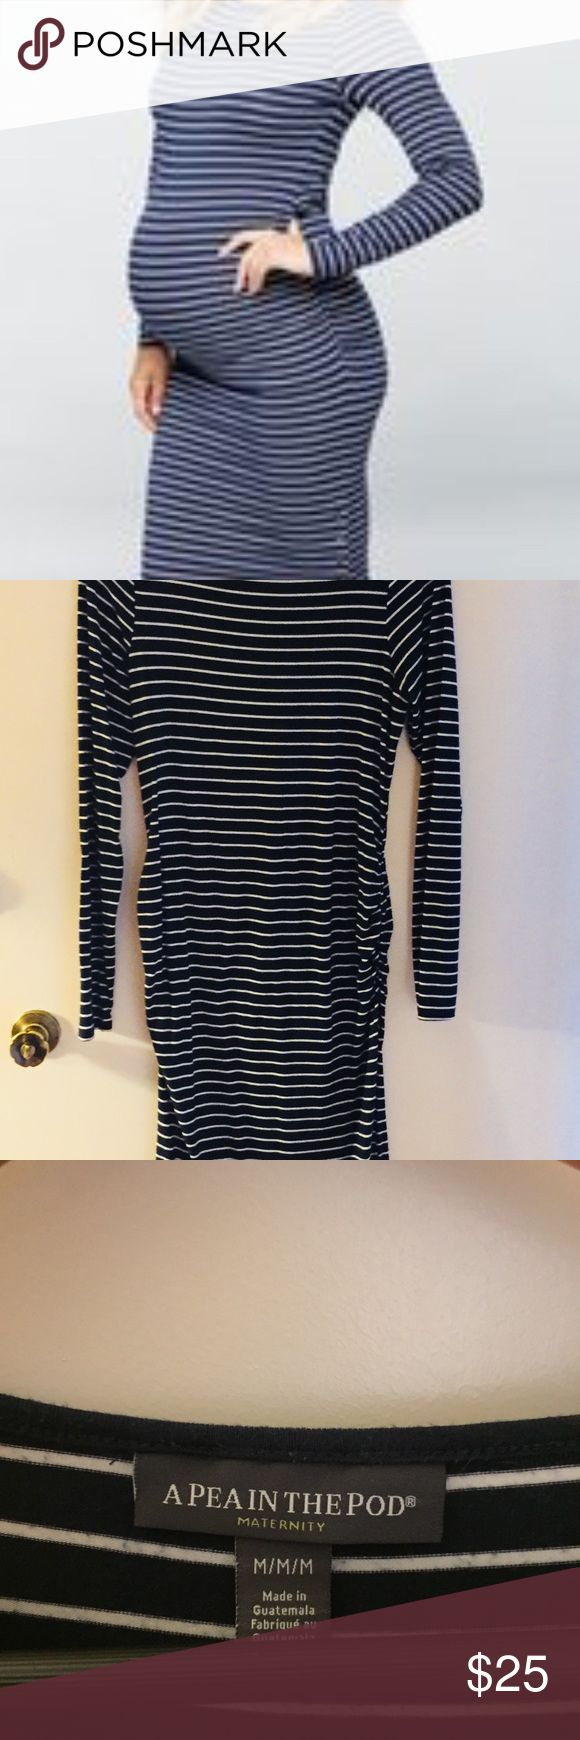 A Pea in the pod Ruched jersey maternity dress Ruched Navy and white stripe maternity dress with side slit with metal button. Normal signs of wear. Super flattering and comfy for the expecting mamas. A Pea in the Pod Dresses Midi